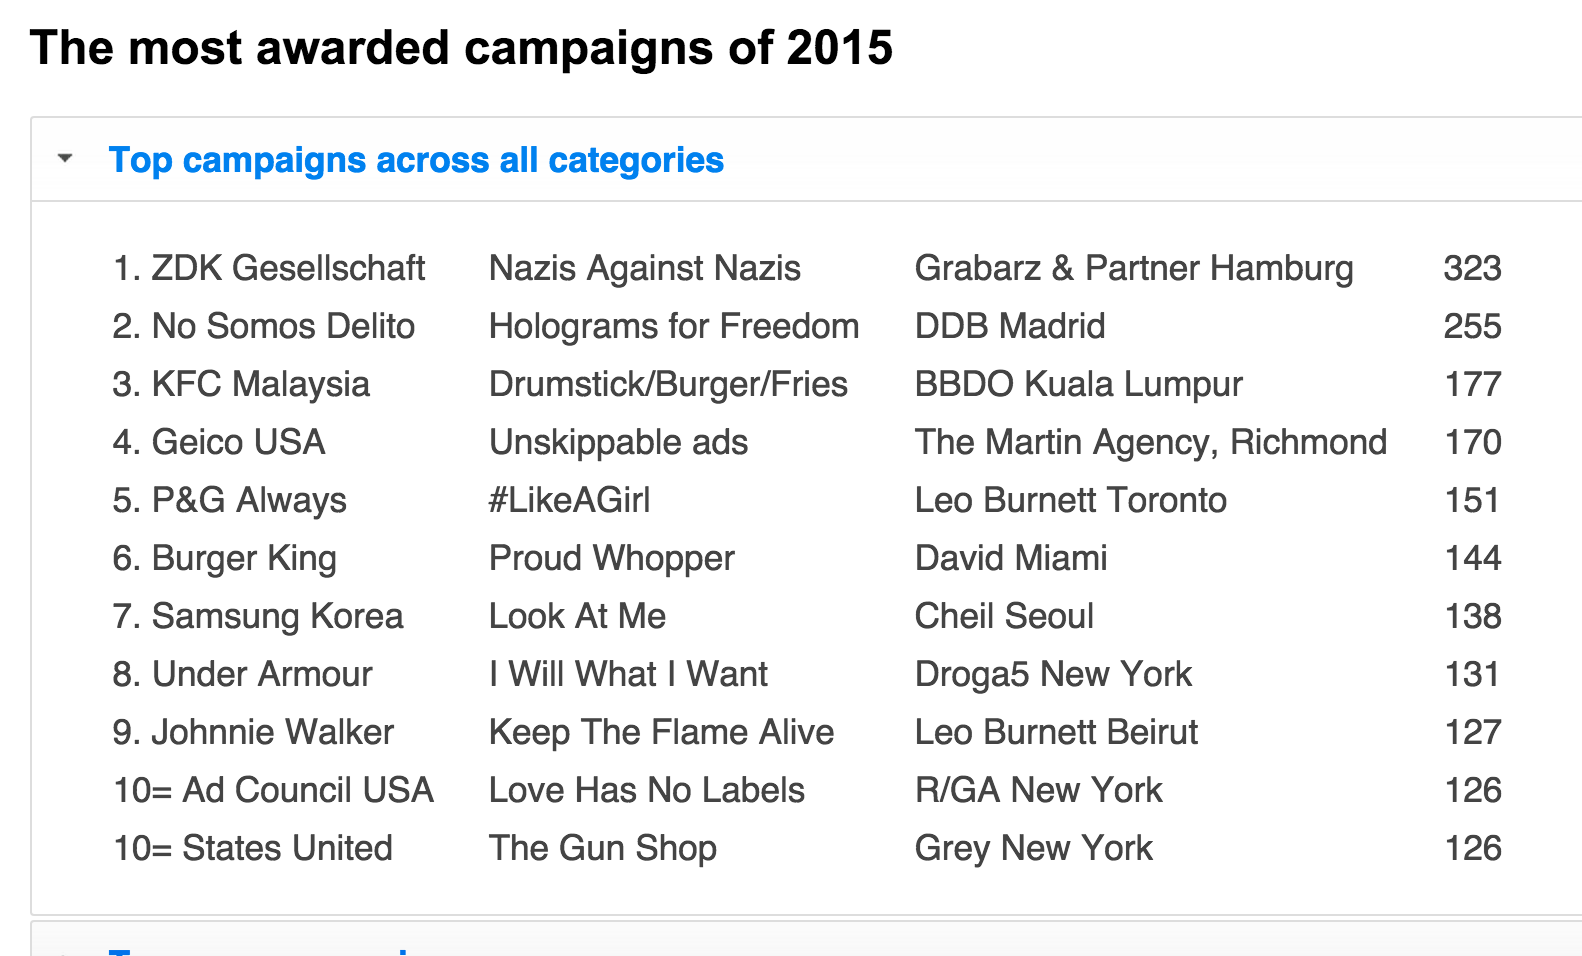 Unskippable among most awarded campaigns in 2015